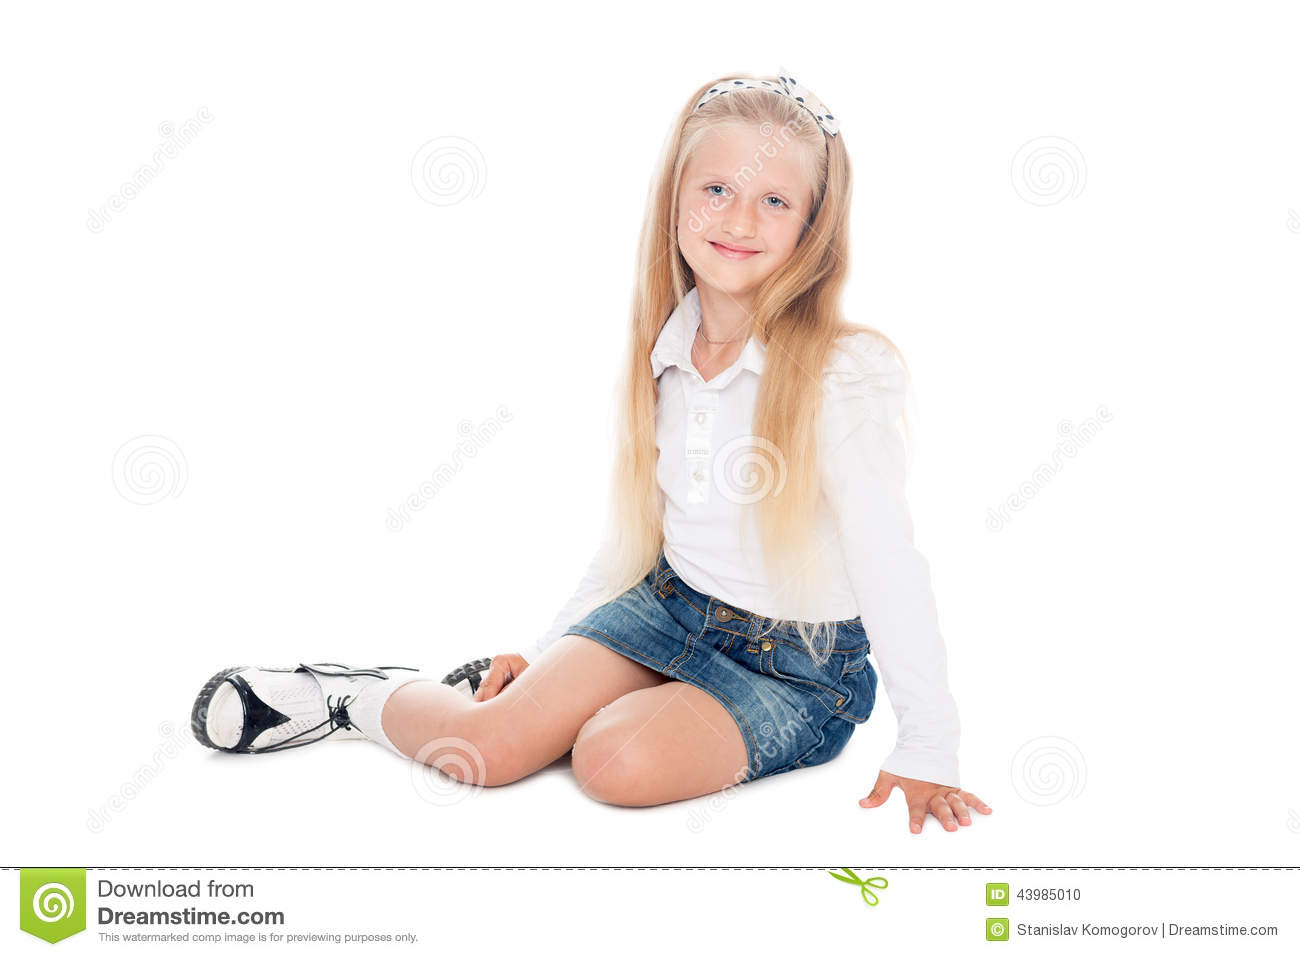 Awesome  Haired Cheerful Girl In A Short Skirt Sitting On A Chair And Gesturing